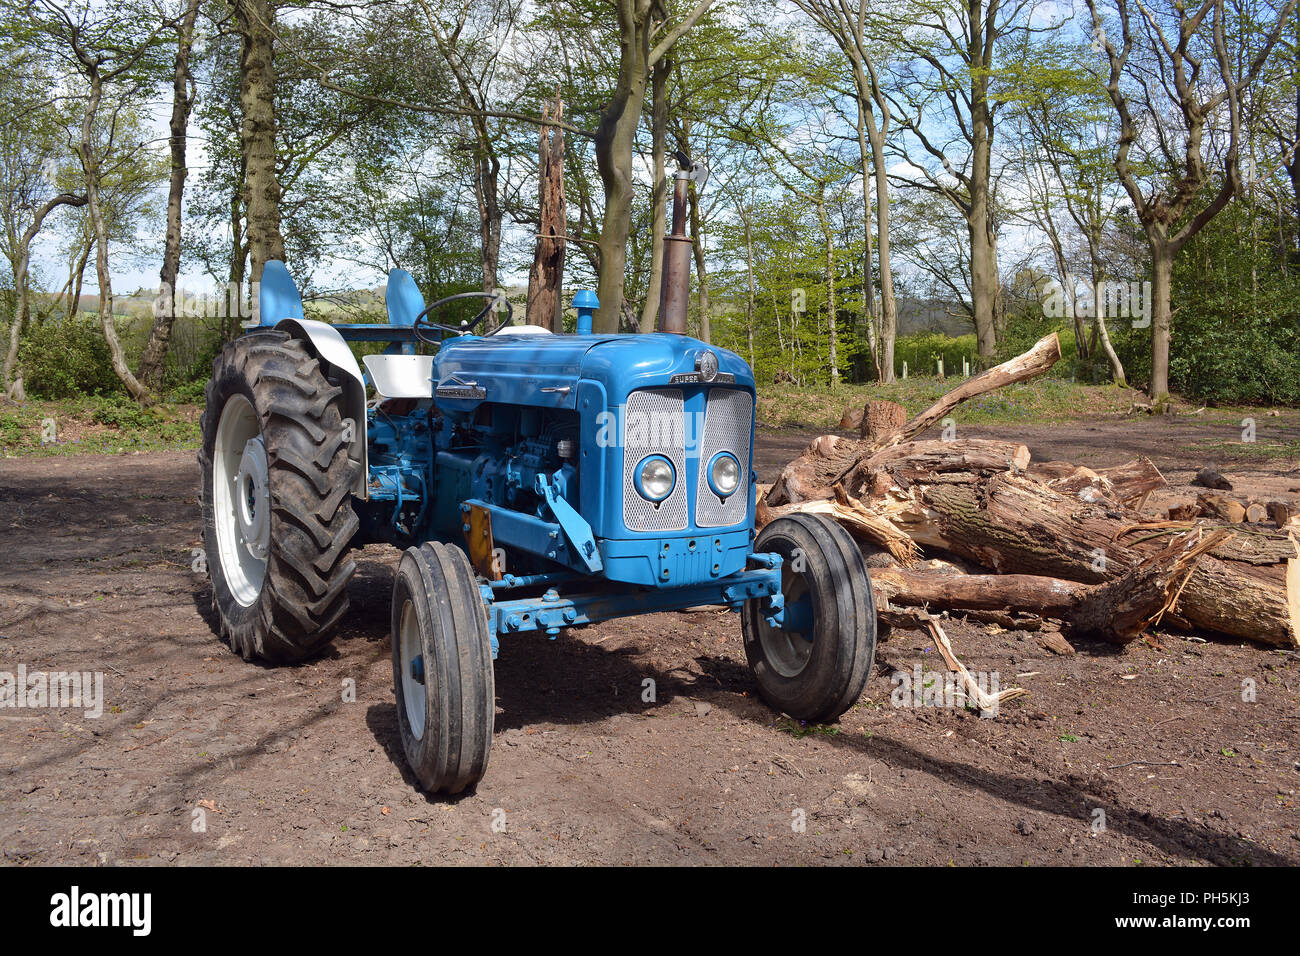 Blue And Grey Tractor Stock Photos & Blue And Grey Tractor